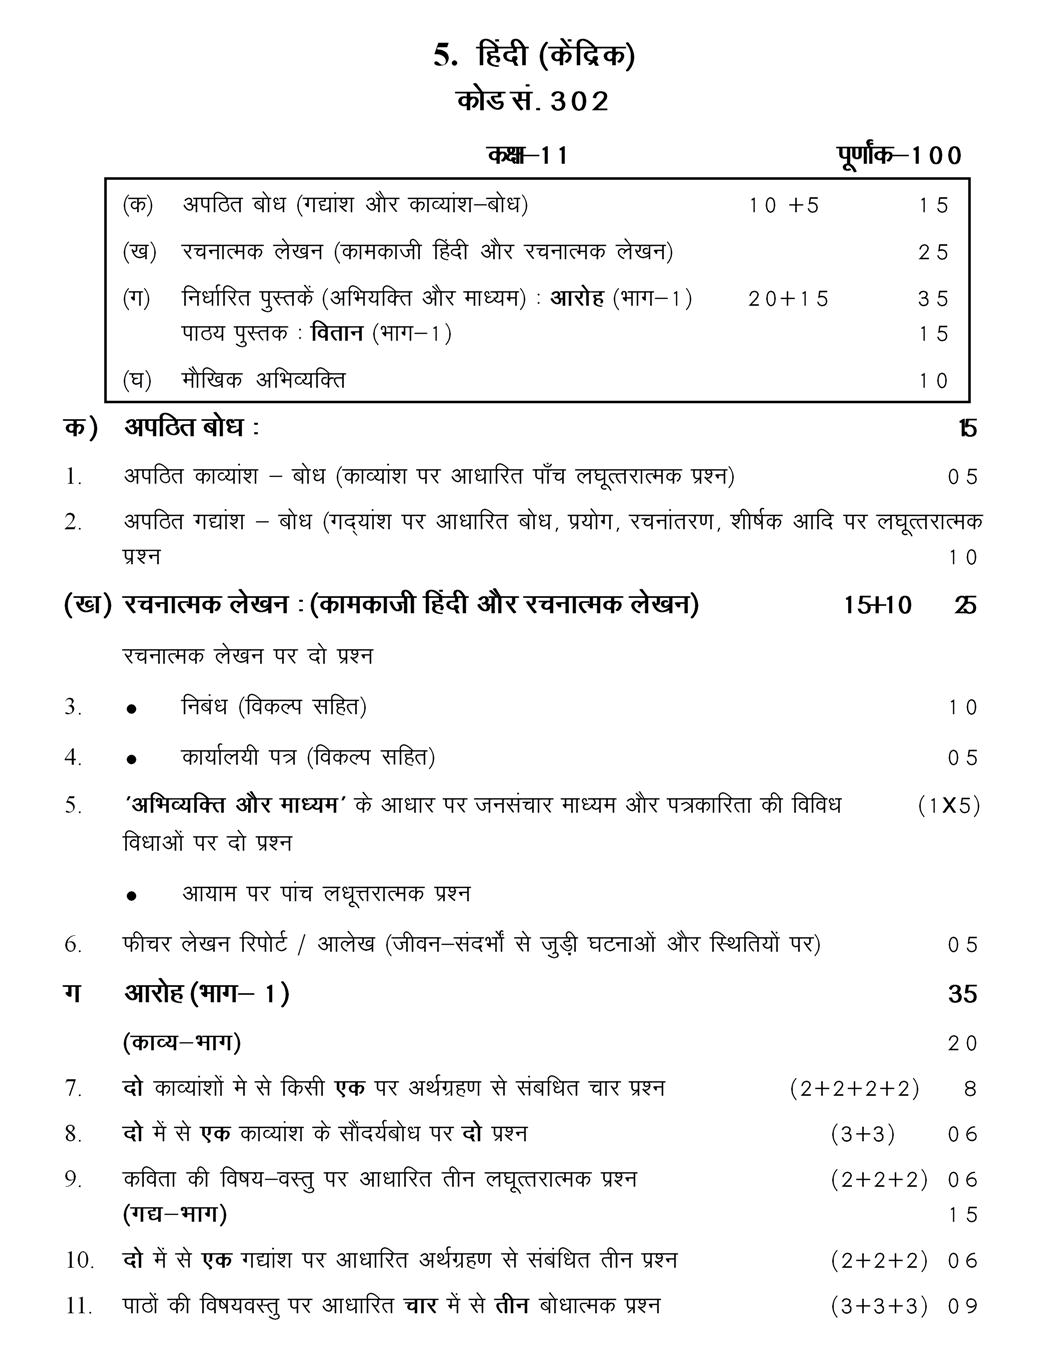 Download CBSE Sample Papers for Class 12 Exam 2 16